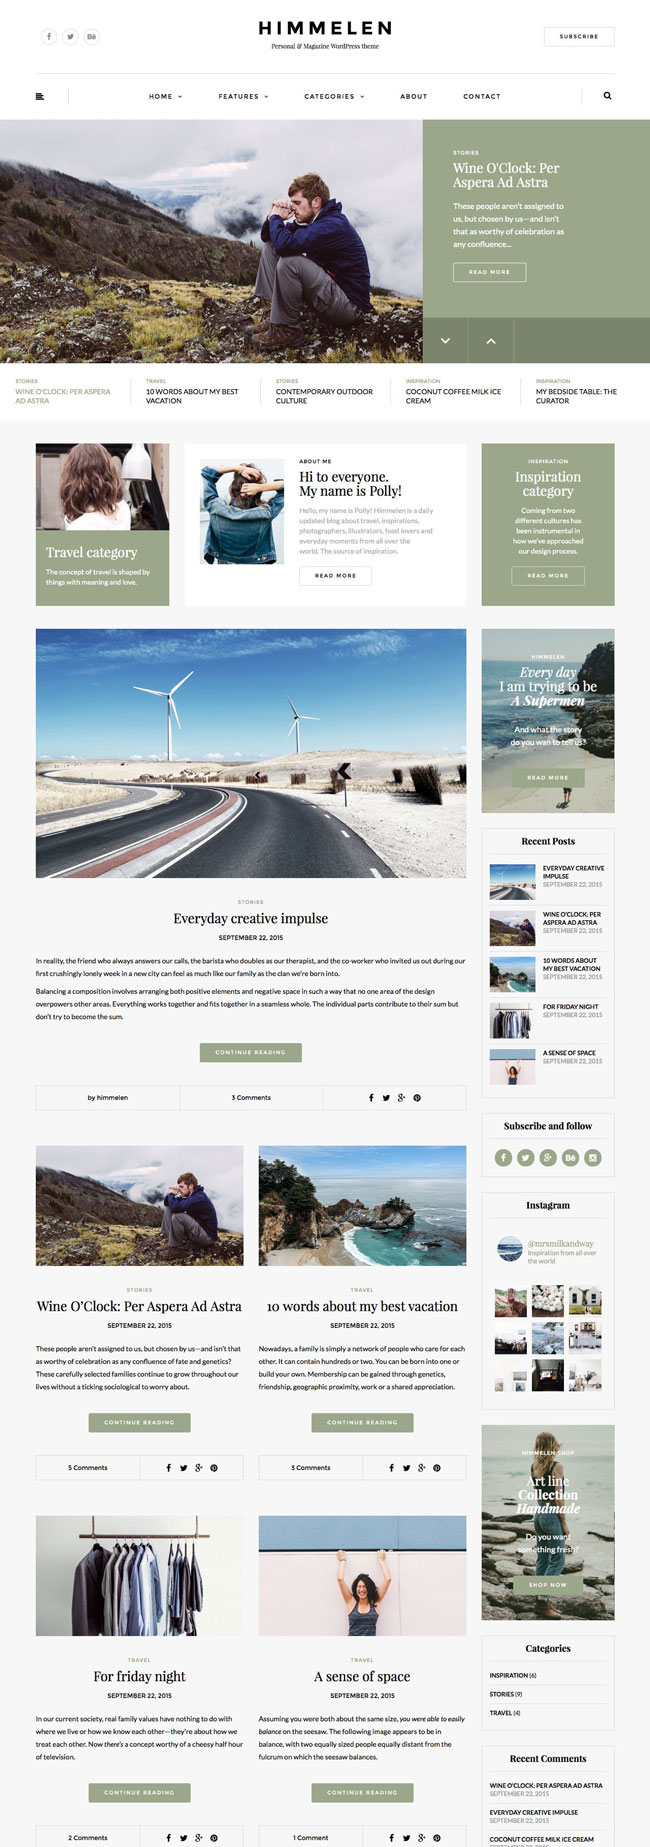 Himmelen-Clean-Personal-WordPress-Blog-Theme